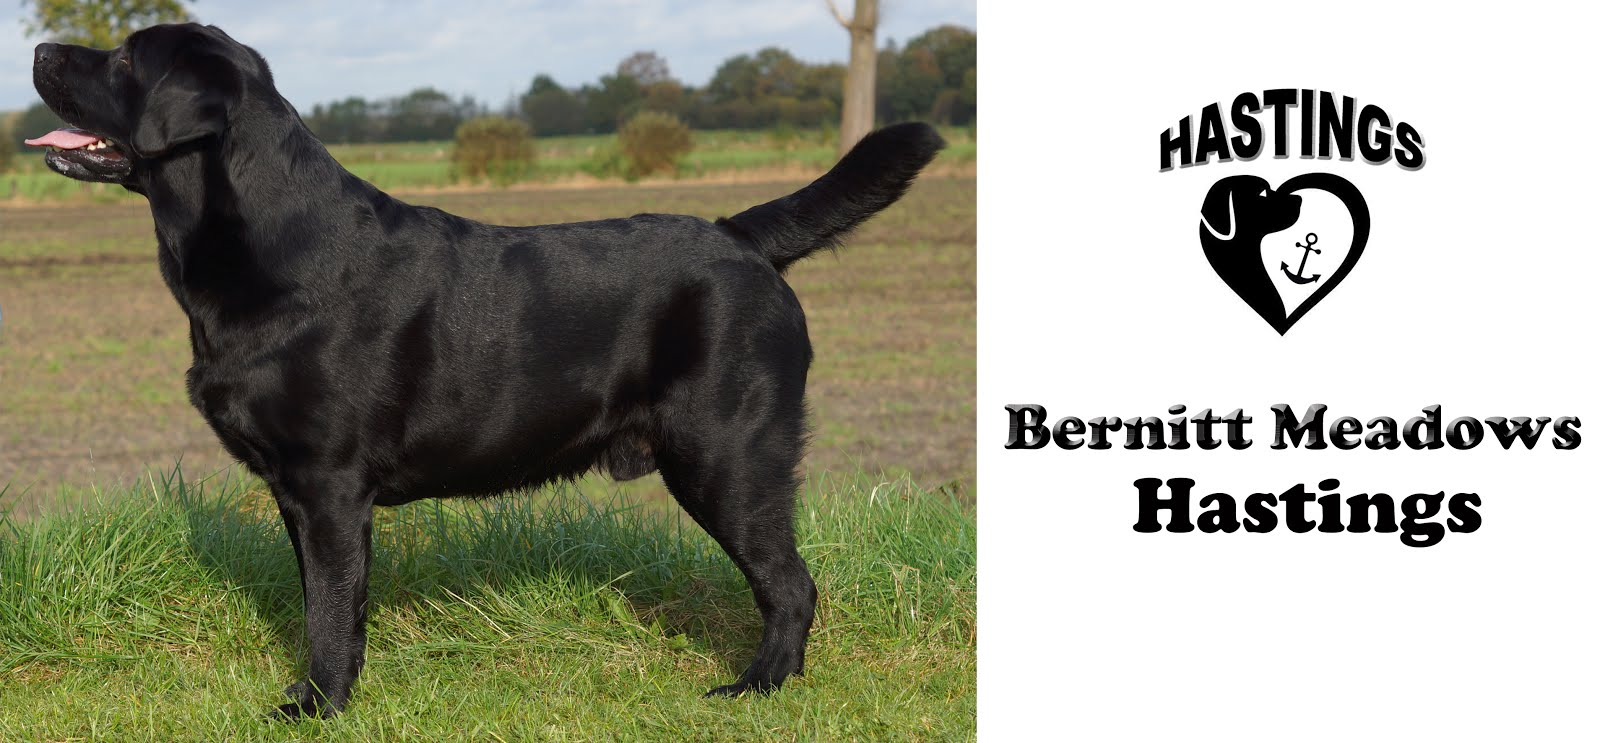 Bernitt Meadows Hastings - The dog with a blog! Mitglied im Labrador Club Deutschland LCD .